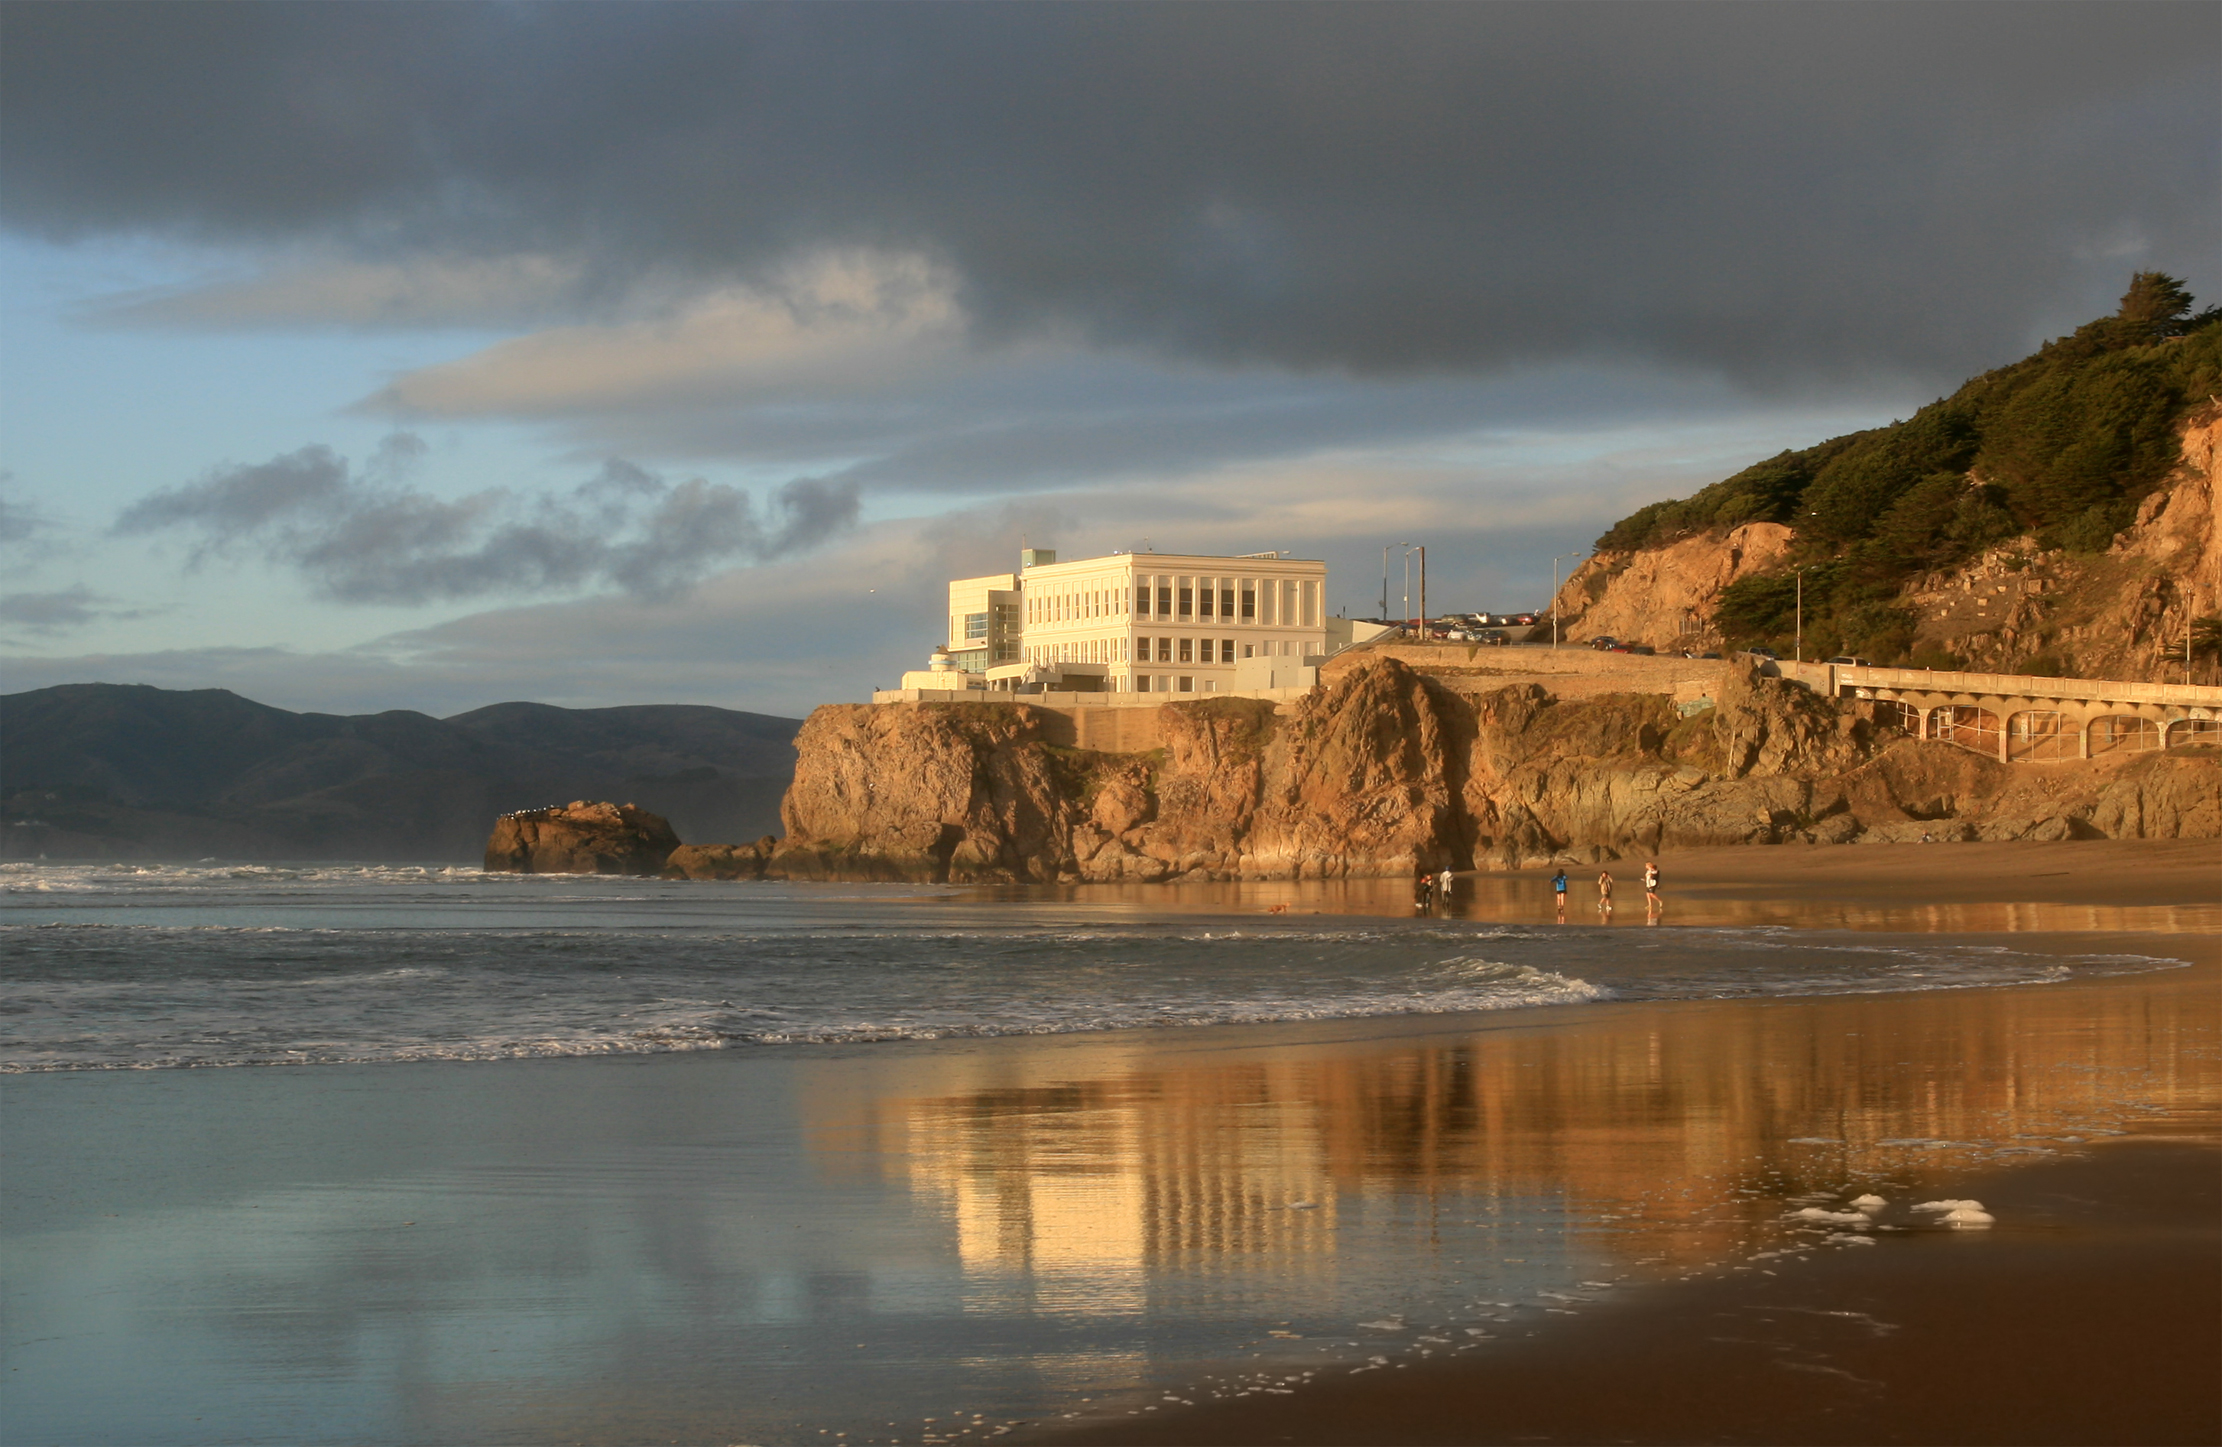 The Cliff House, a white concrete building, atop a cliff ovrerlooking the Pacific Ocean.